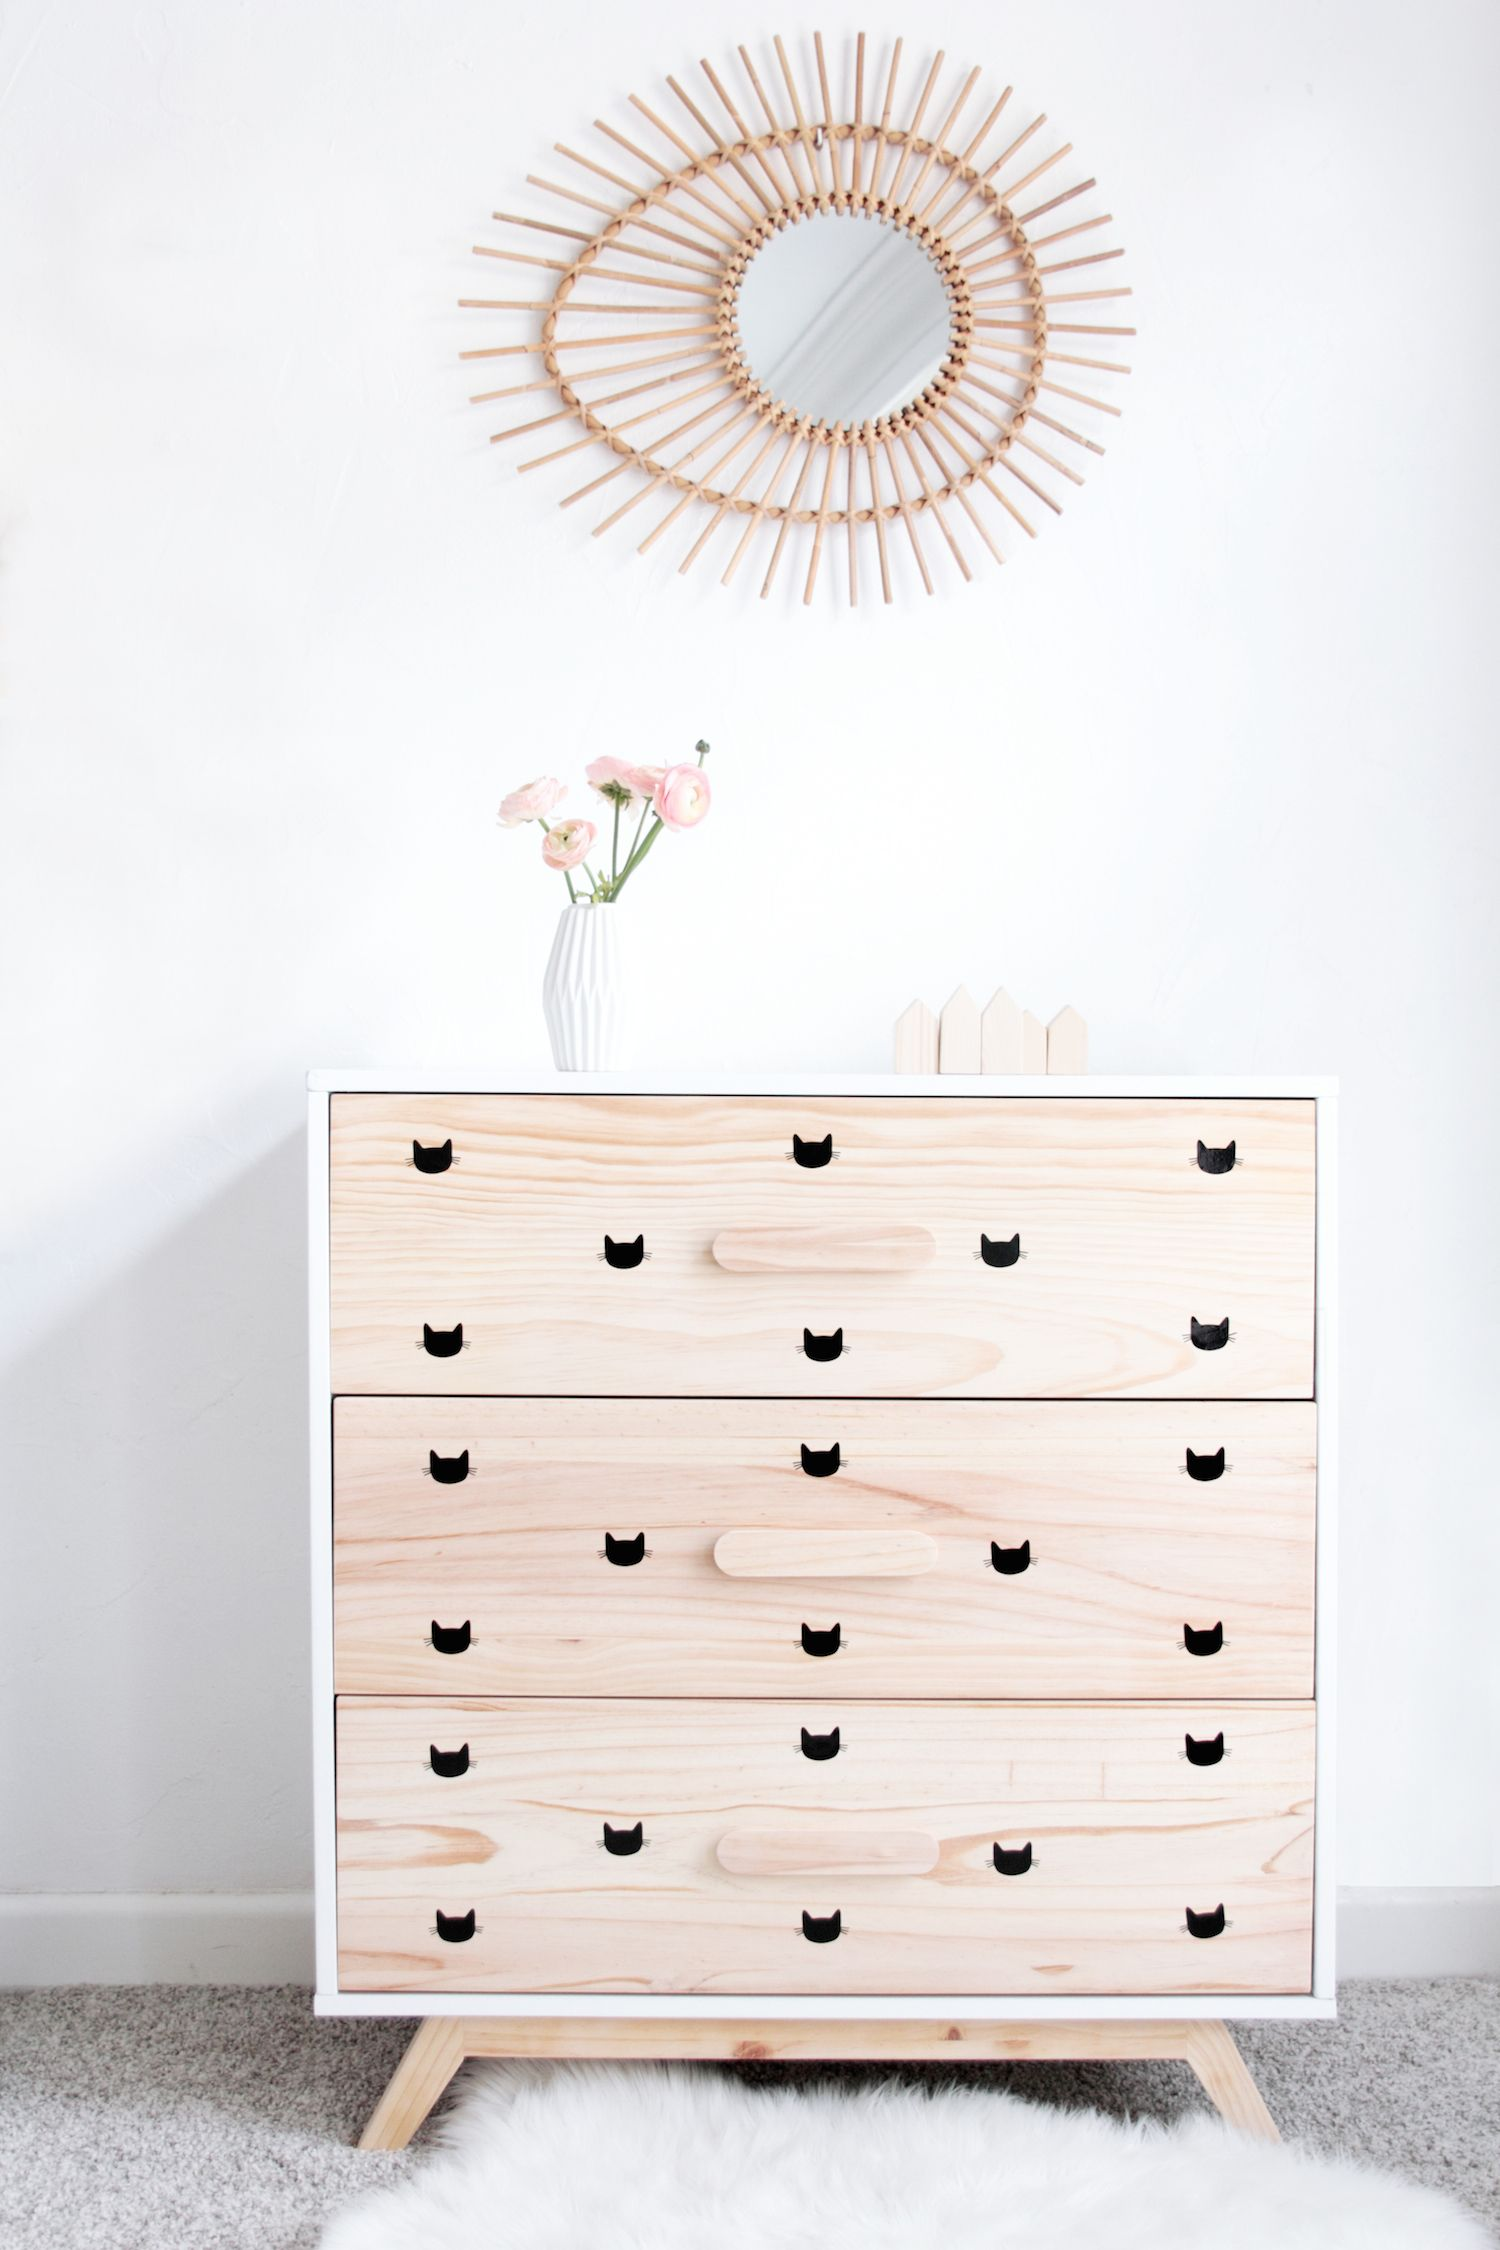 armoire enfant stickers chat miroir rotin 2 h o m e pinterest commode enfant enfant et. Black Bedroom Furniture Sets. Home Design Ideas